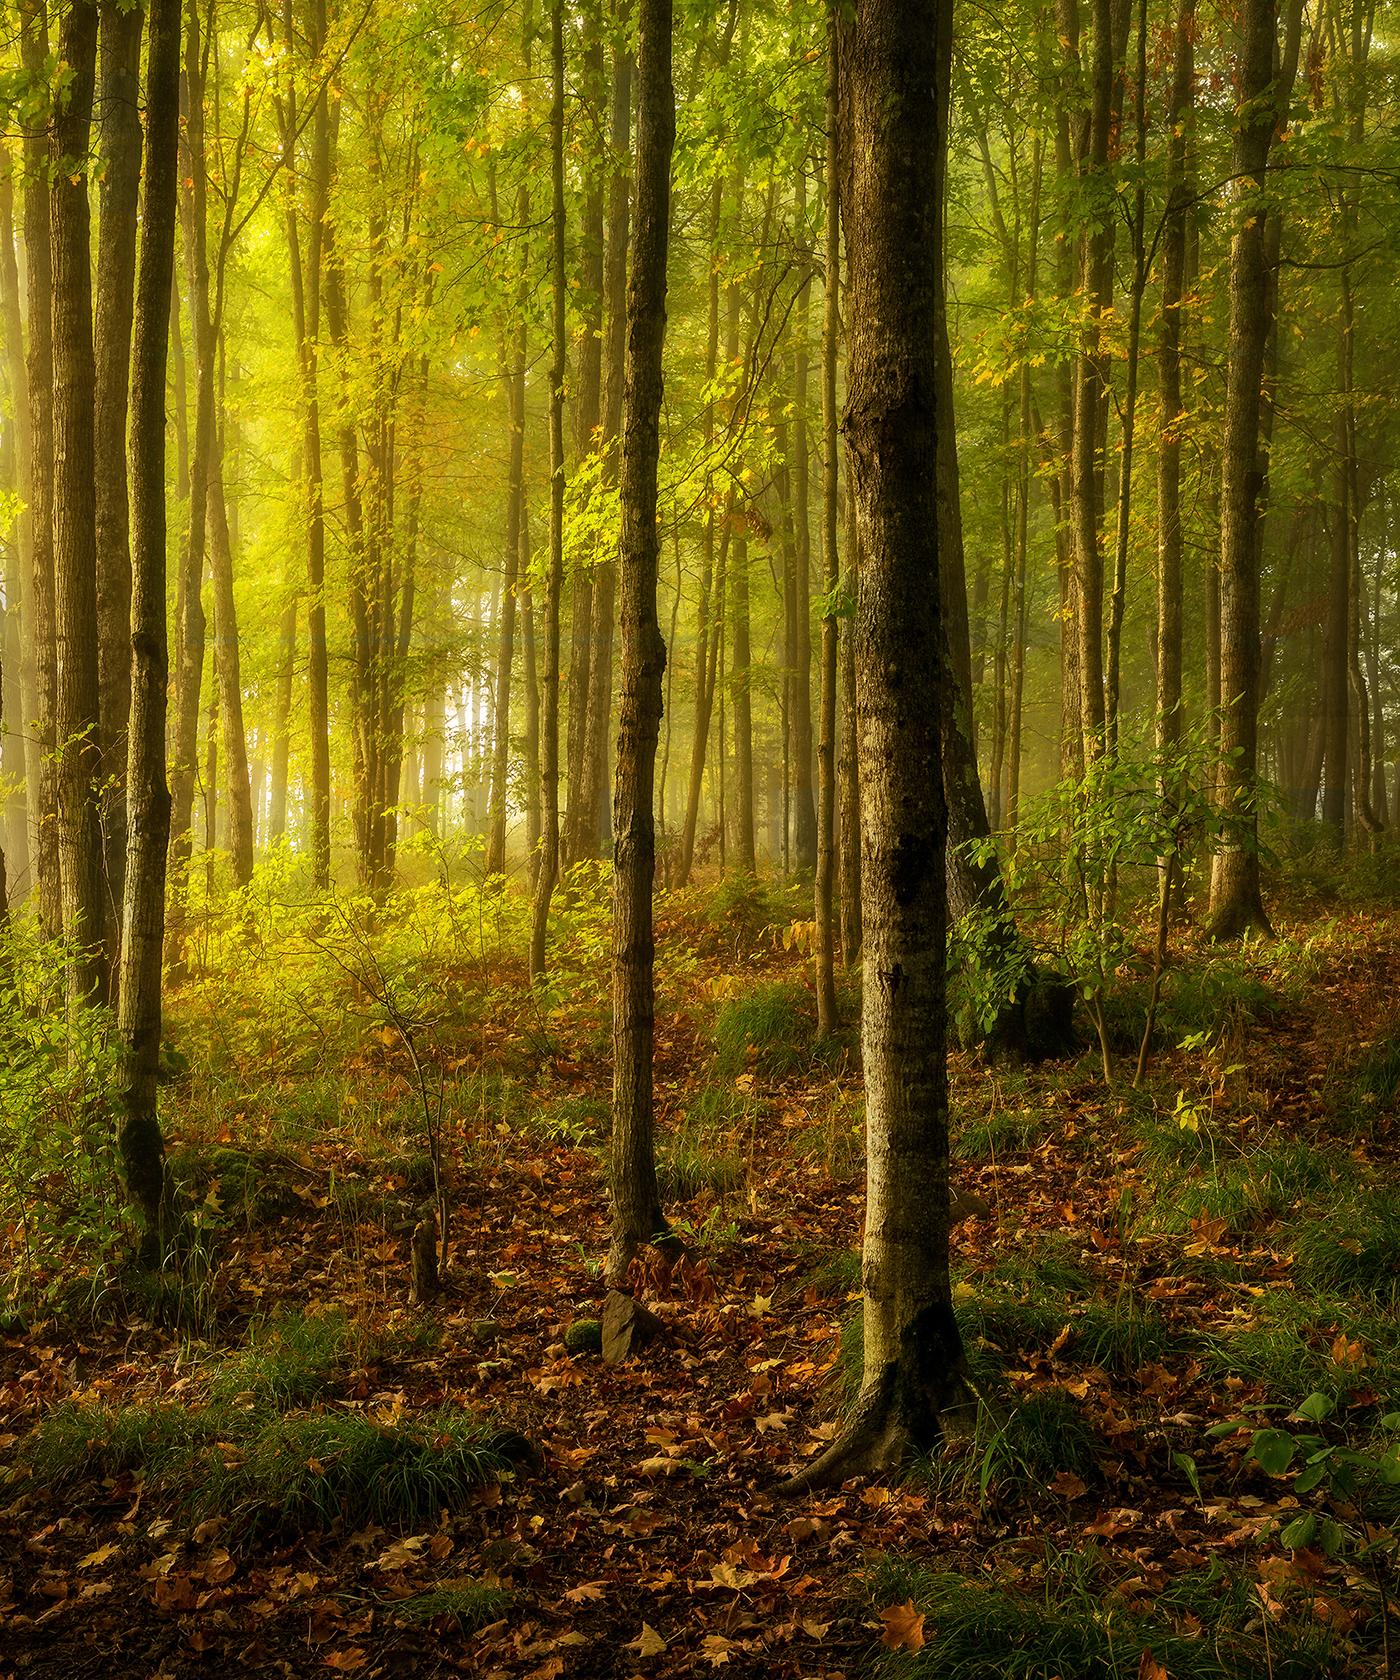 Morning Glow in the Woods